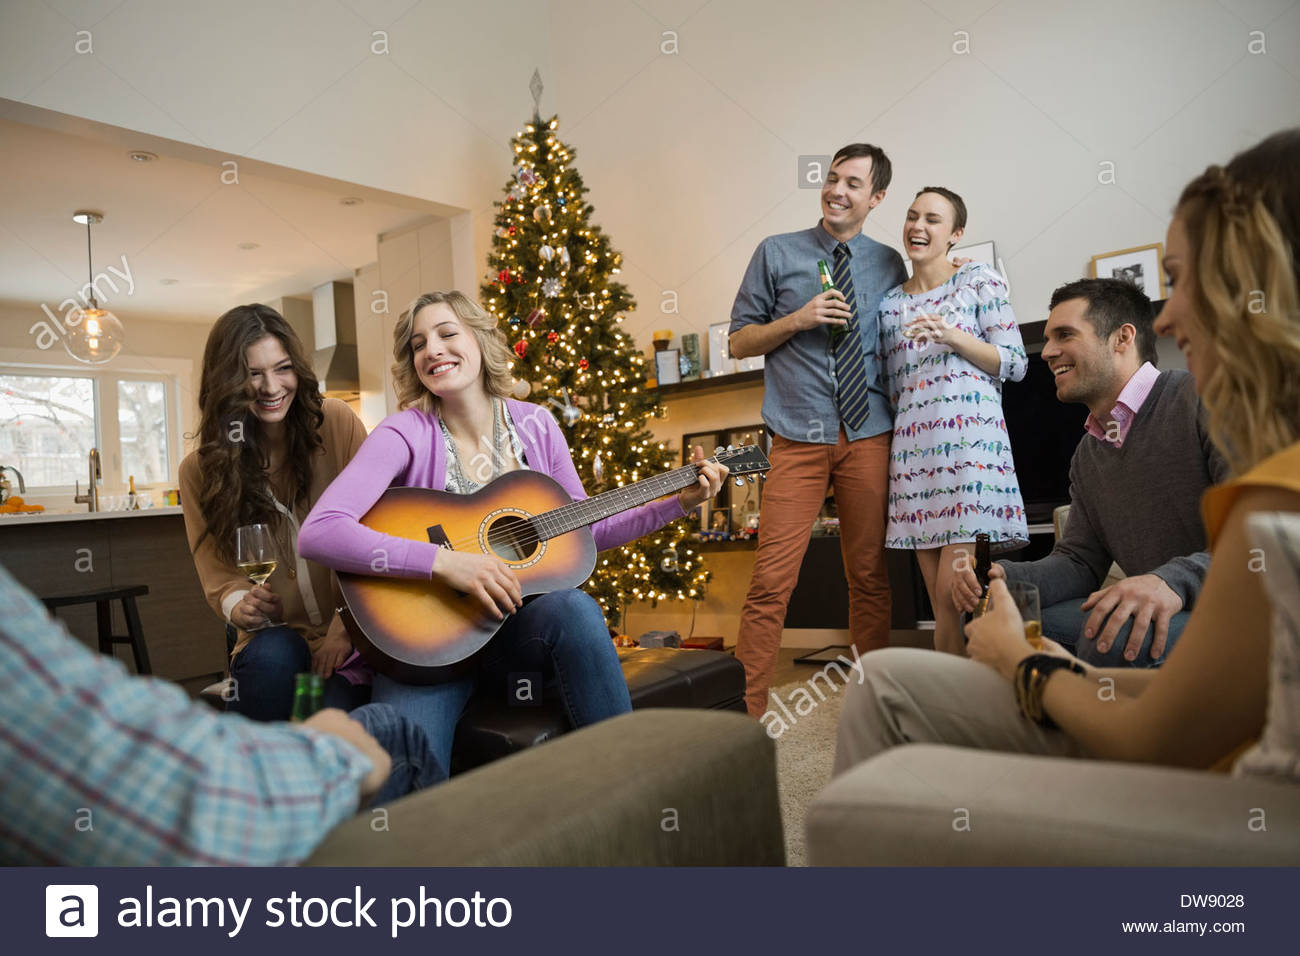 Friends spending leisure time together at home during Christmas - Stock Image